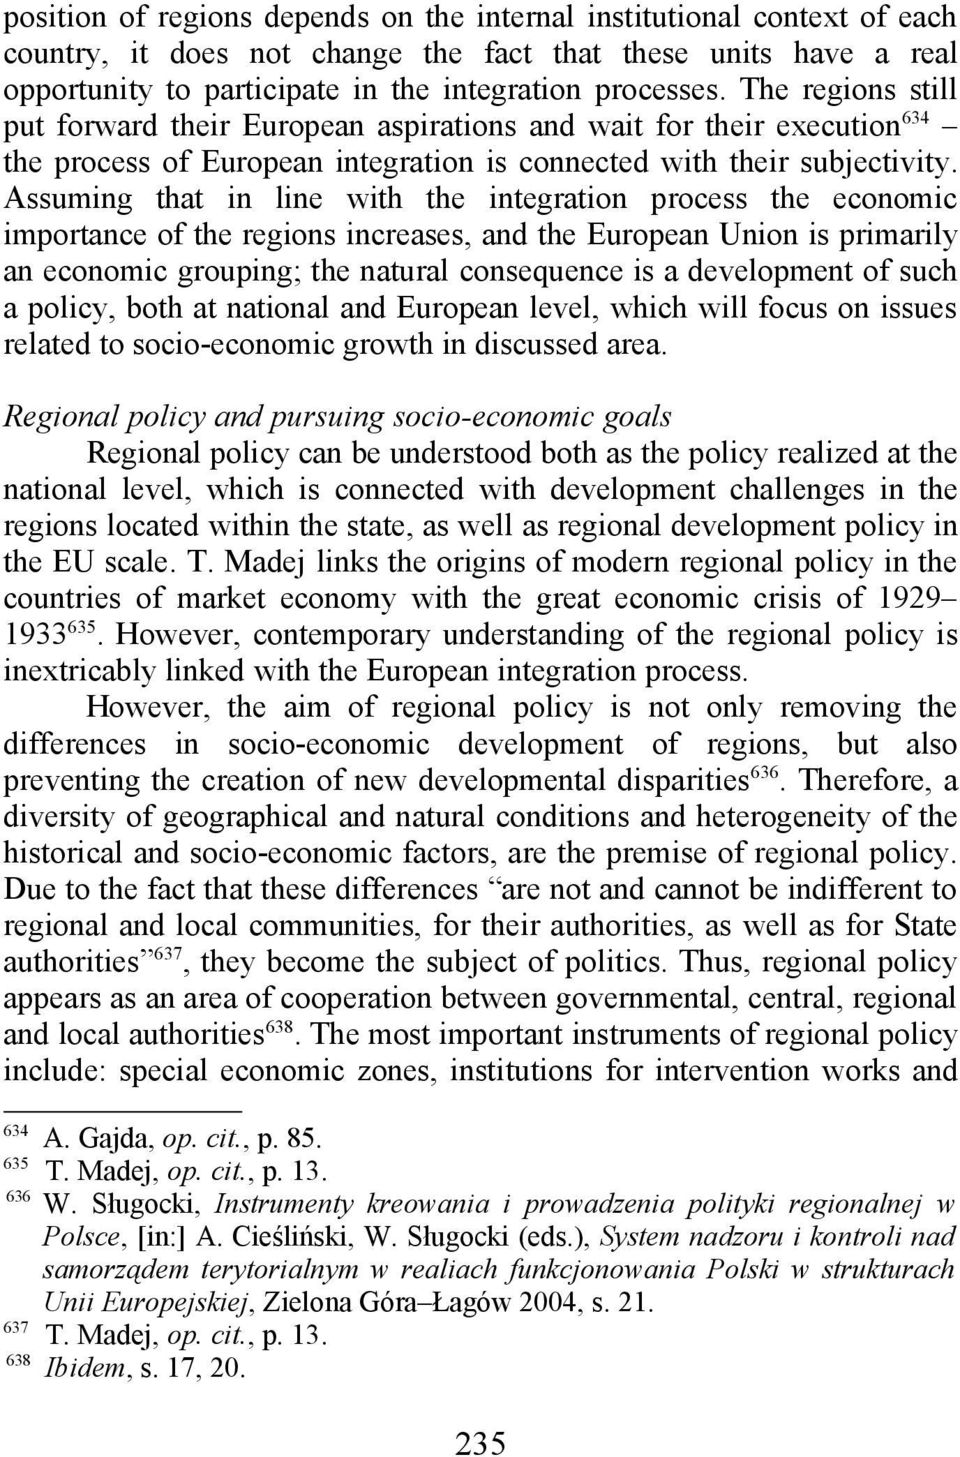 Assuming that in line with the integration process the economic importance of the regions increases, and the European Union is primarily an economic grouping; the natural consequence is a development